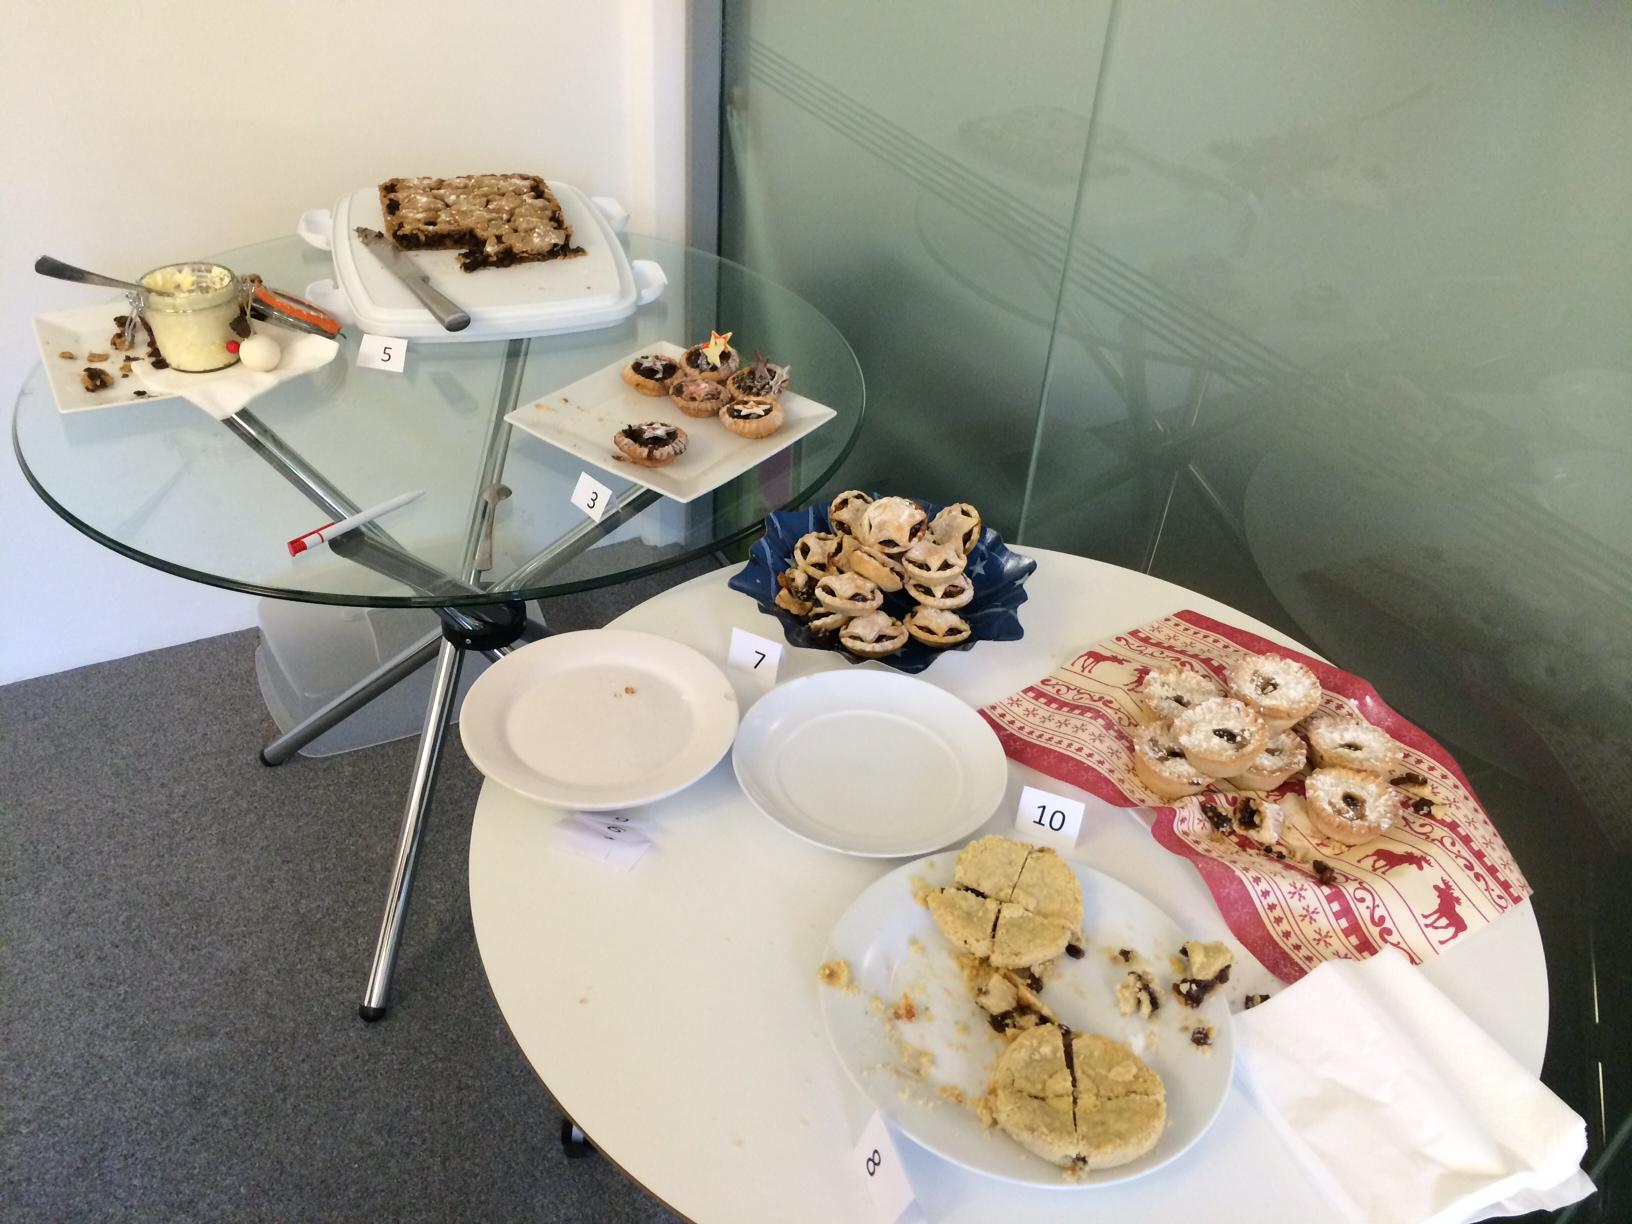 The Think Tank hosts mince pie bake off - find out more here: #bakeoff #christmas http://t.co/ZhGhvjL8C7 http://t.co/uHtQEtNWF6